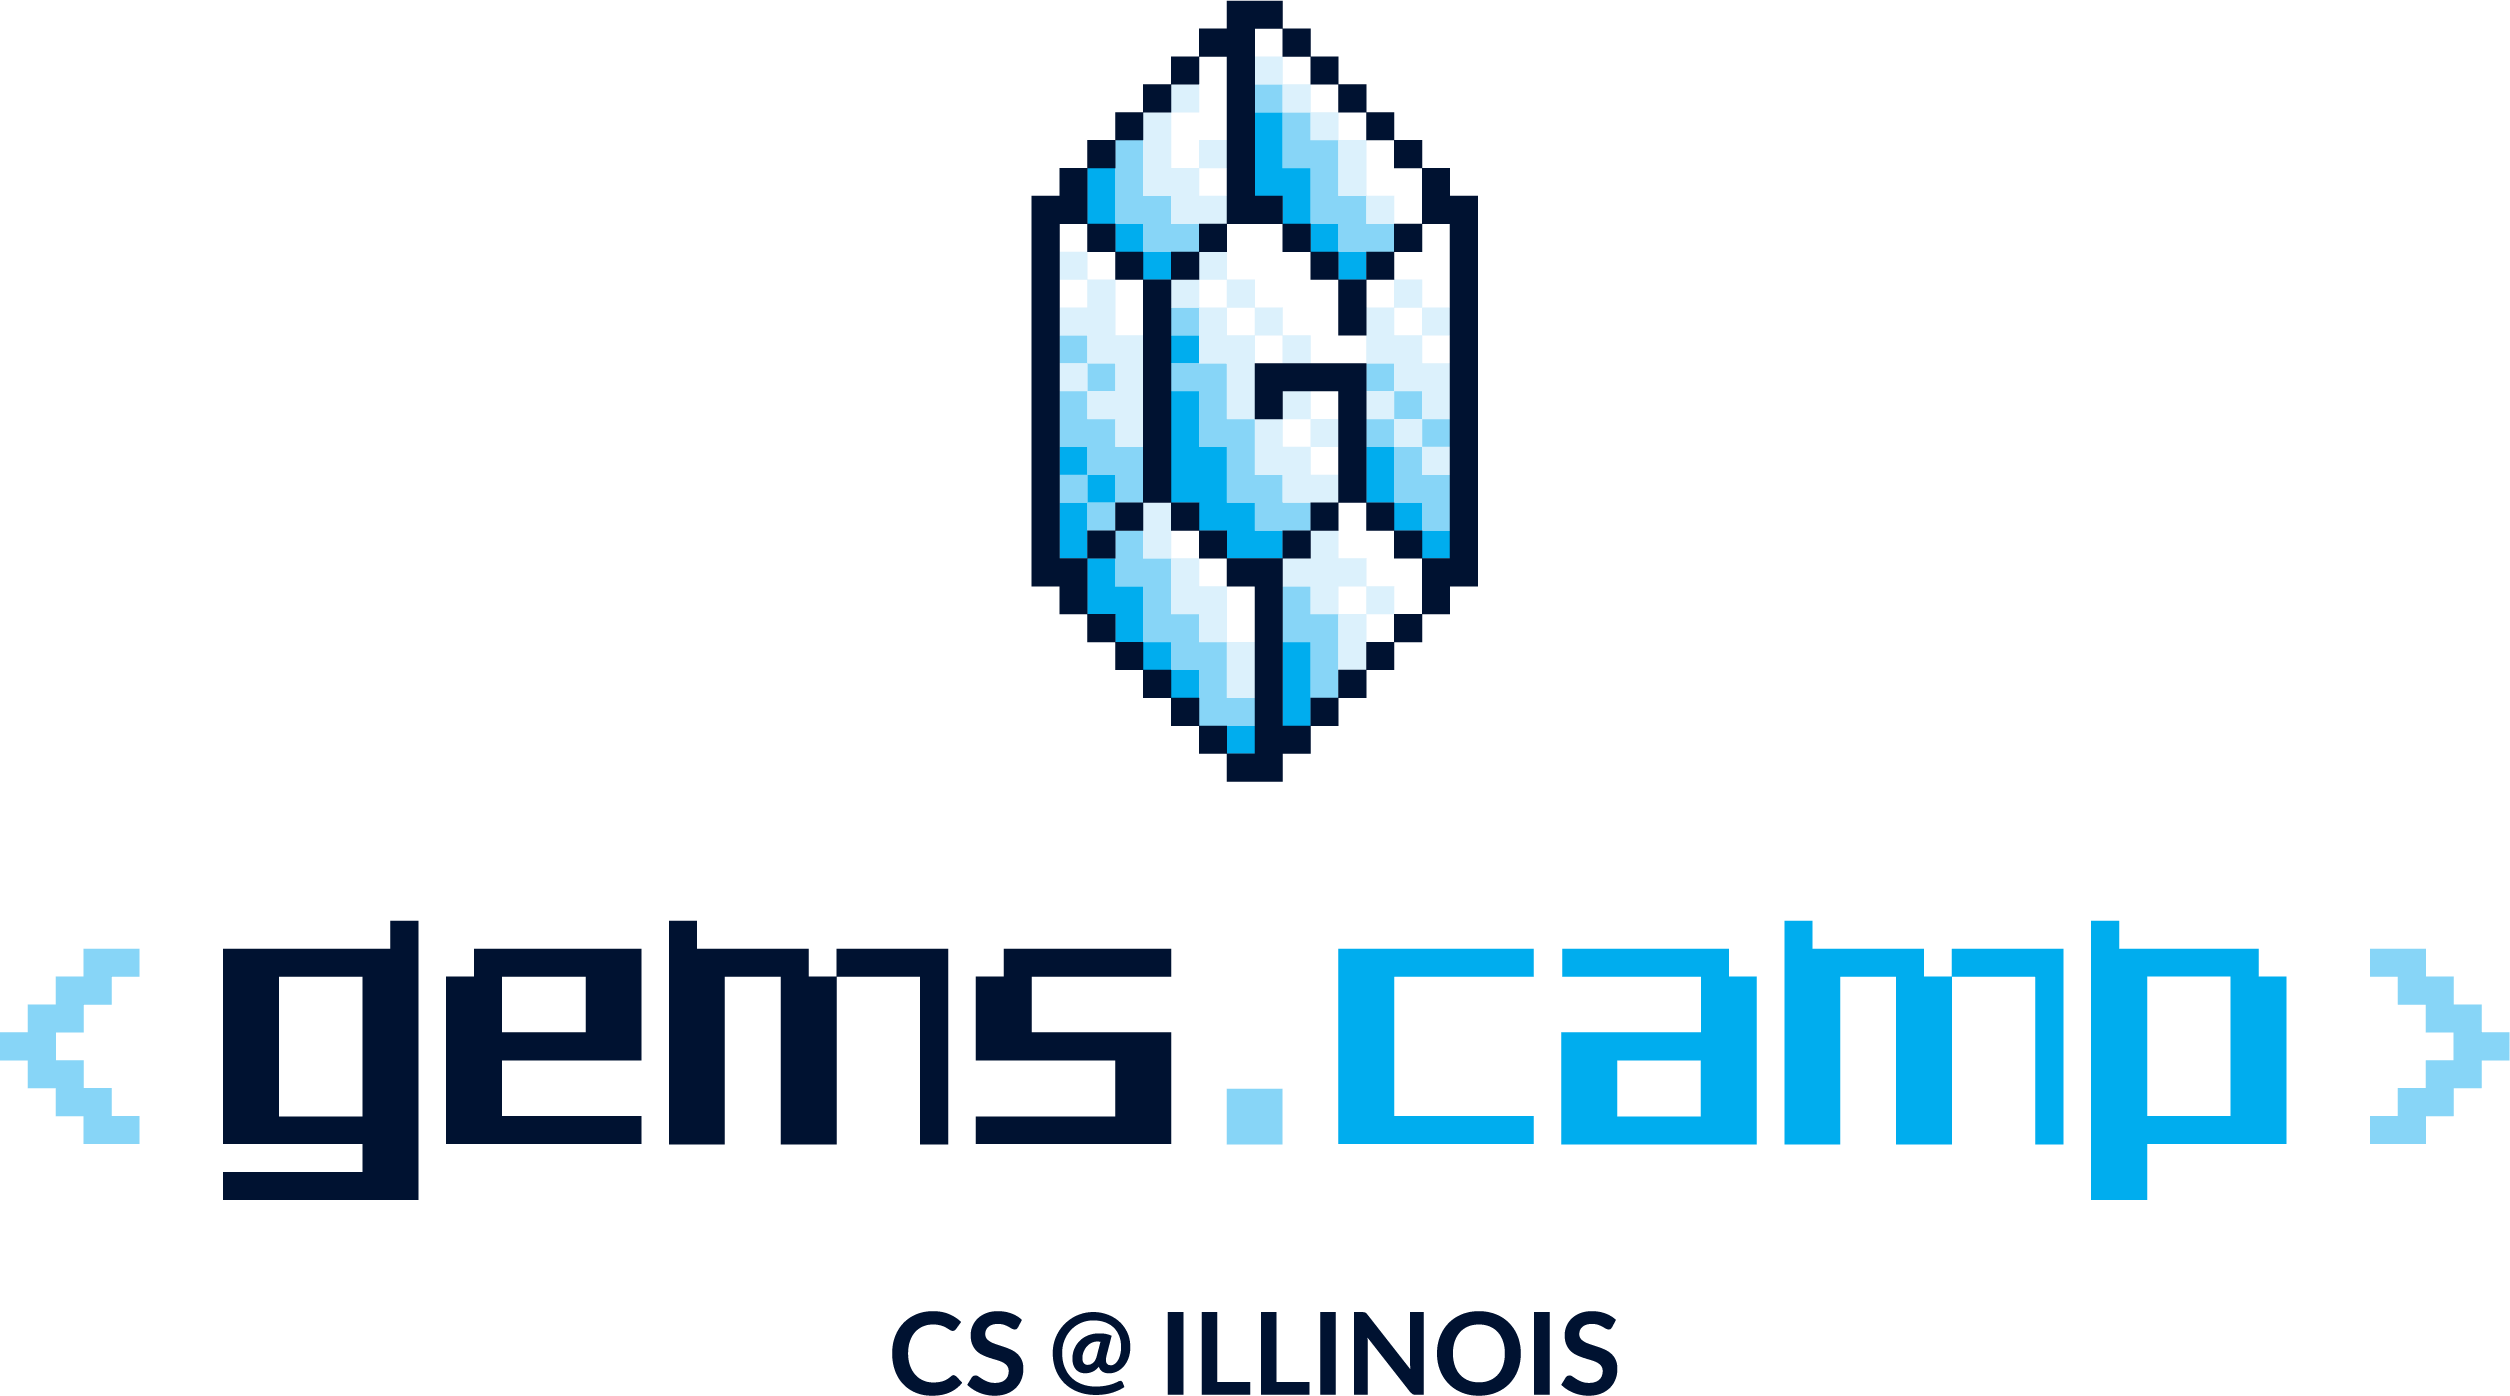 Illinois Computer Science - GEMS Branding